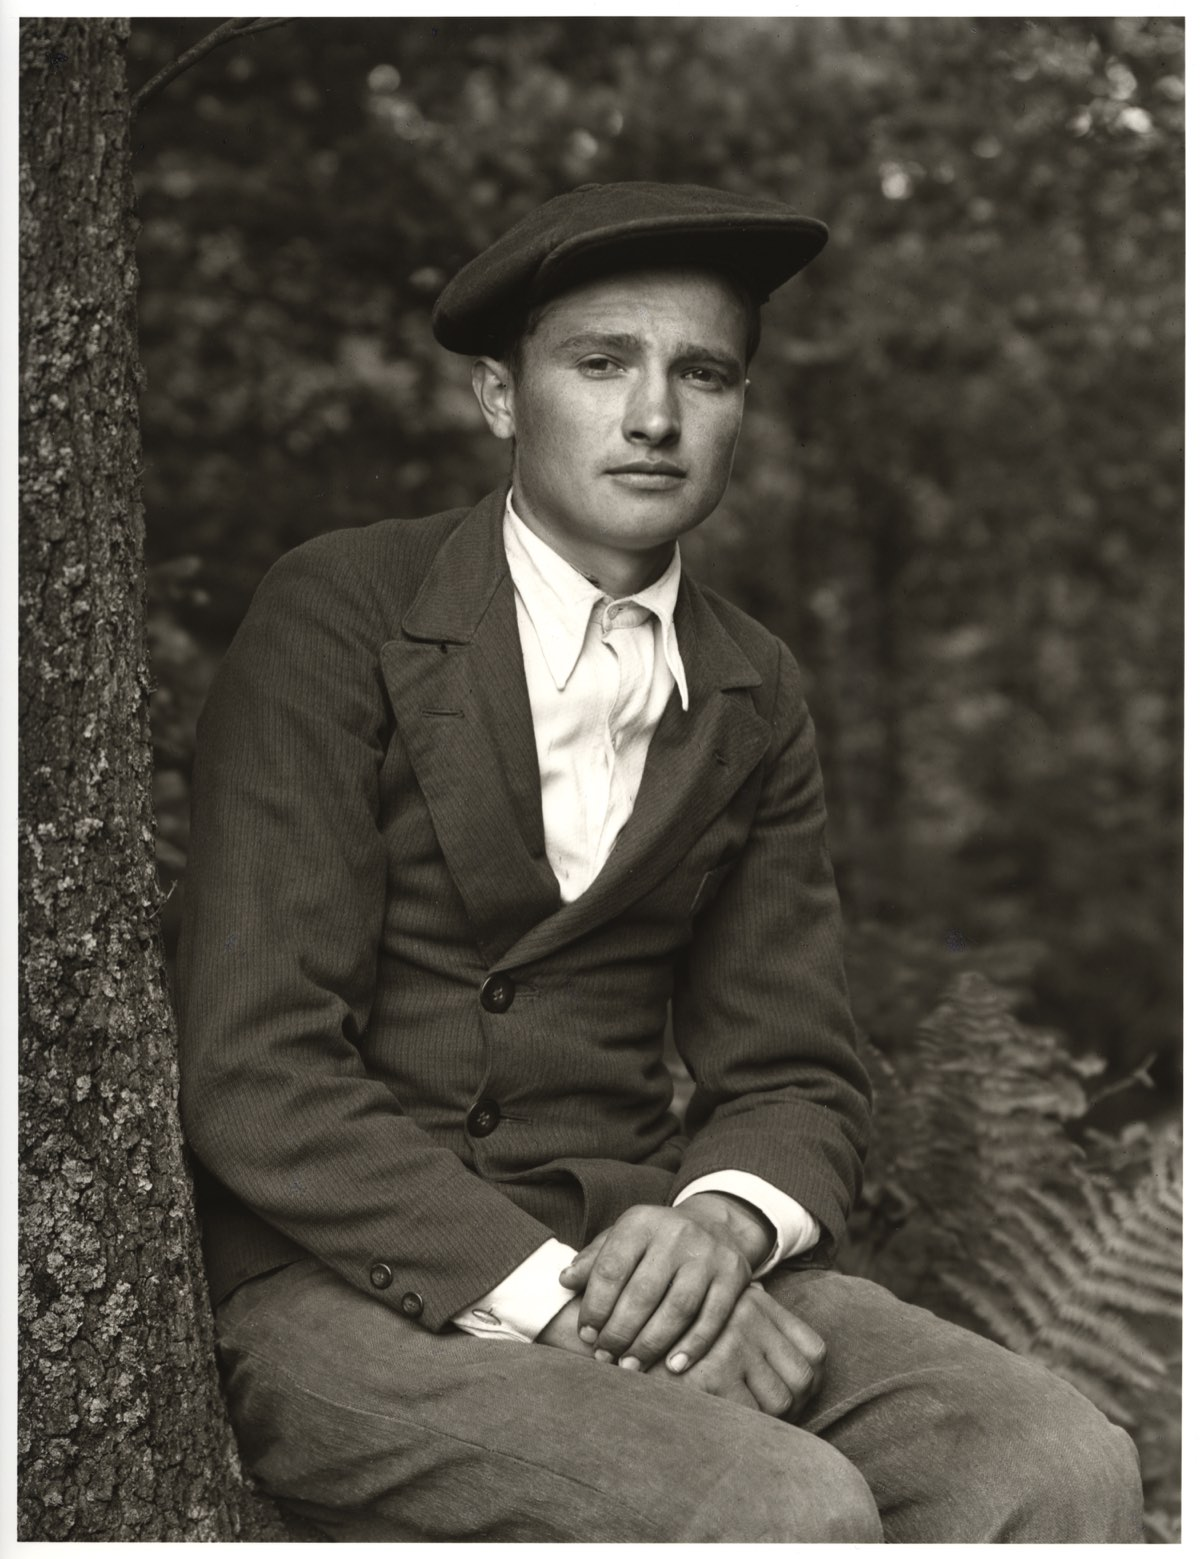 August Sander: Portraits in the face of oblivion - The Eye